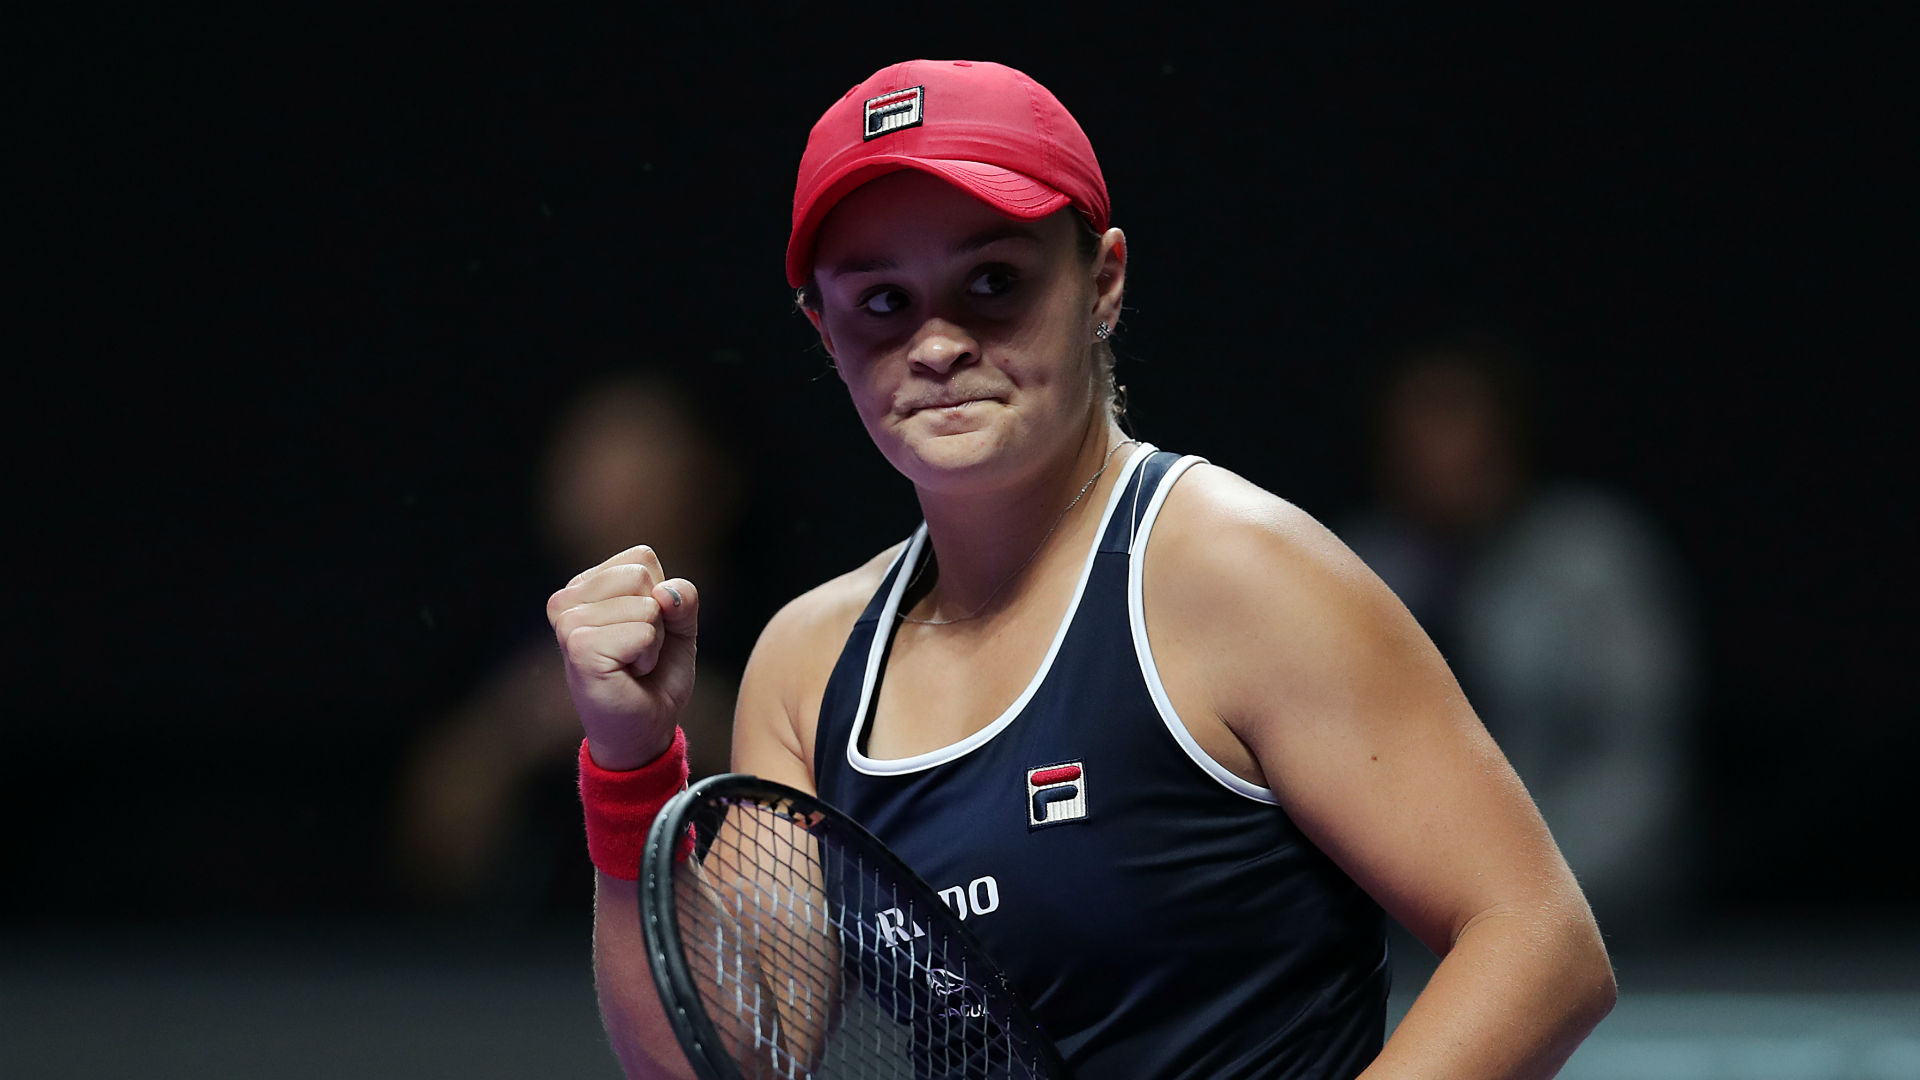 Barty locks down number one spot as Osaka battles past Kvitova